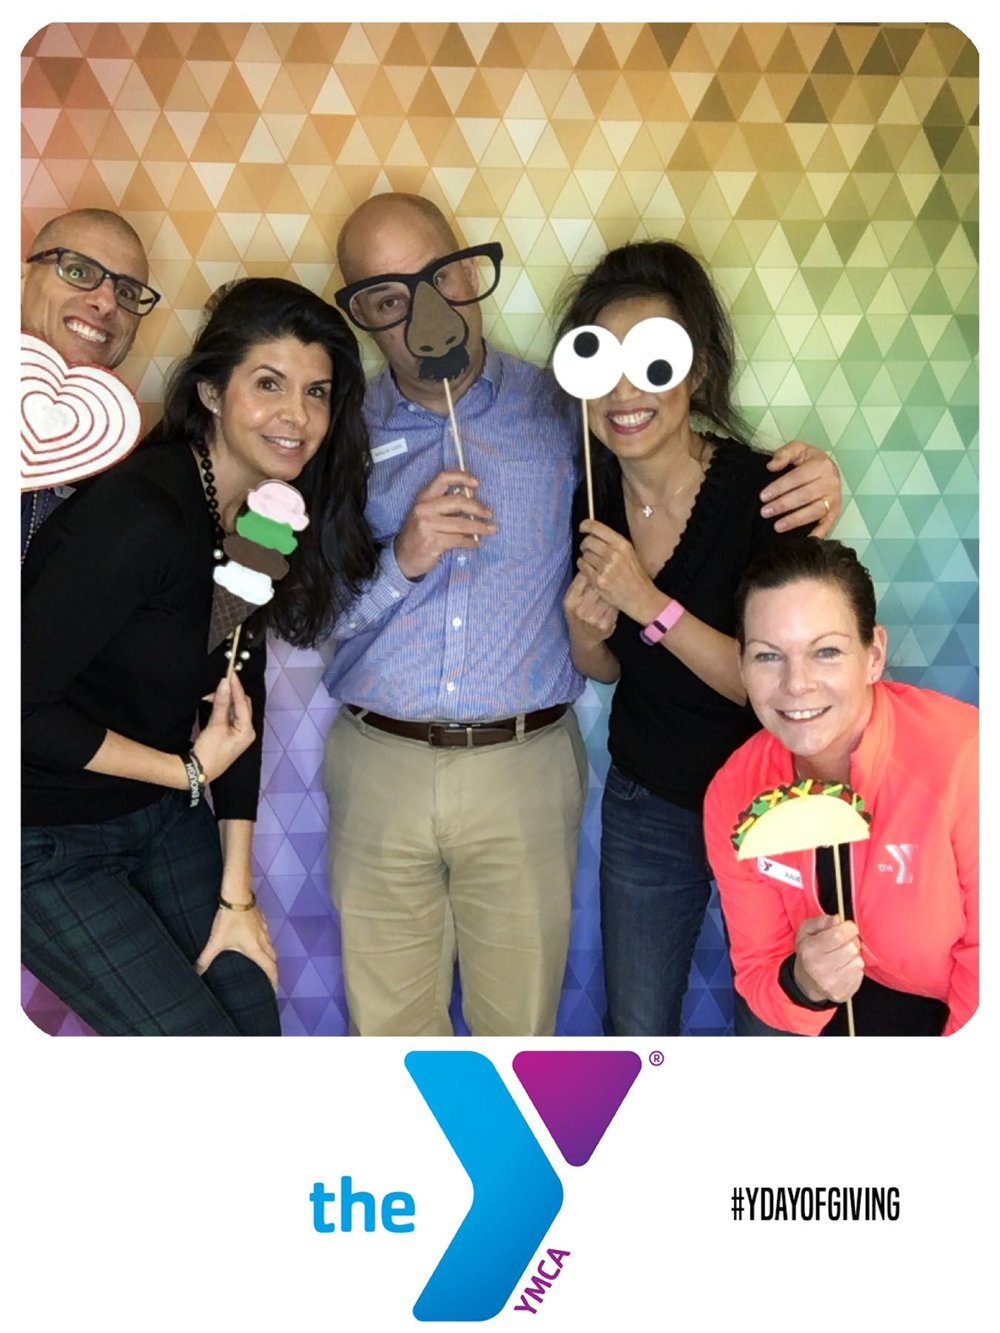 The Photo frame has the clients logo, YMCA, and their hashtag for the event. All of this is customizable when you book our services.